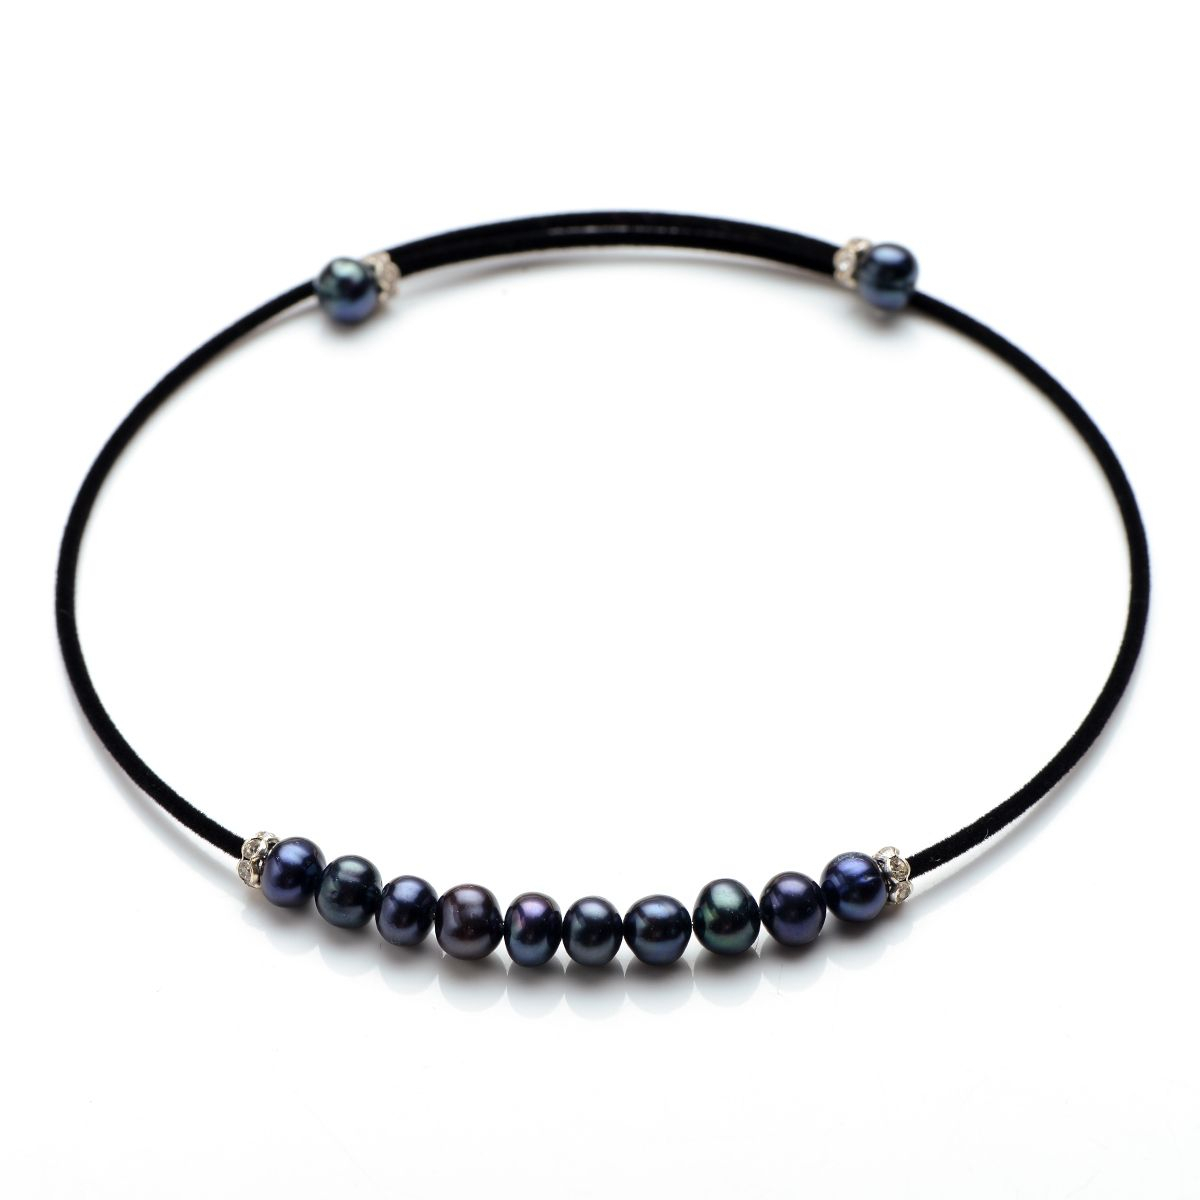 Luxury 7 8Mm Black Potato Pearls Choker Necklace Black Cotton Cord For Ladies Pertaining To Most Up To Date Offset Freshwater Cultured Pearl Circle Necklaces (View 15 of 25)